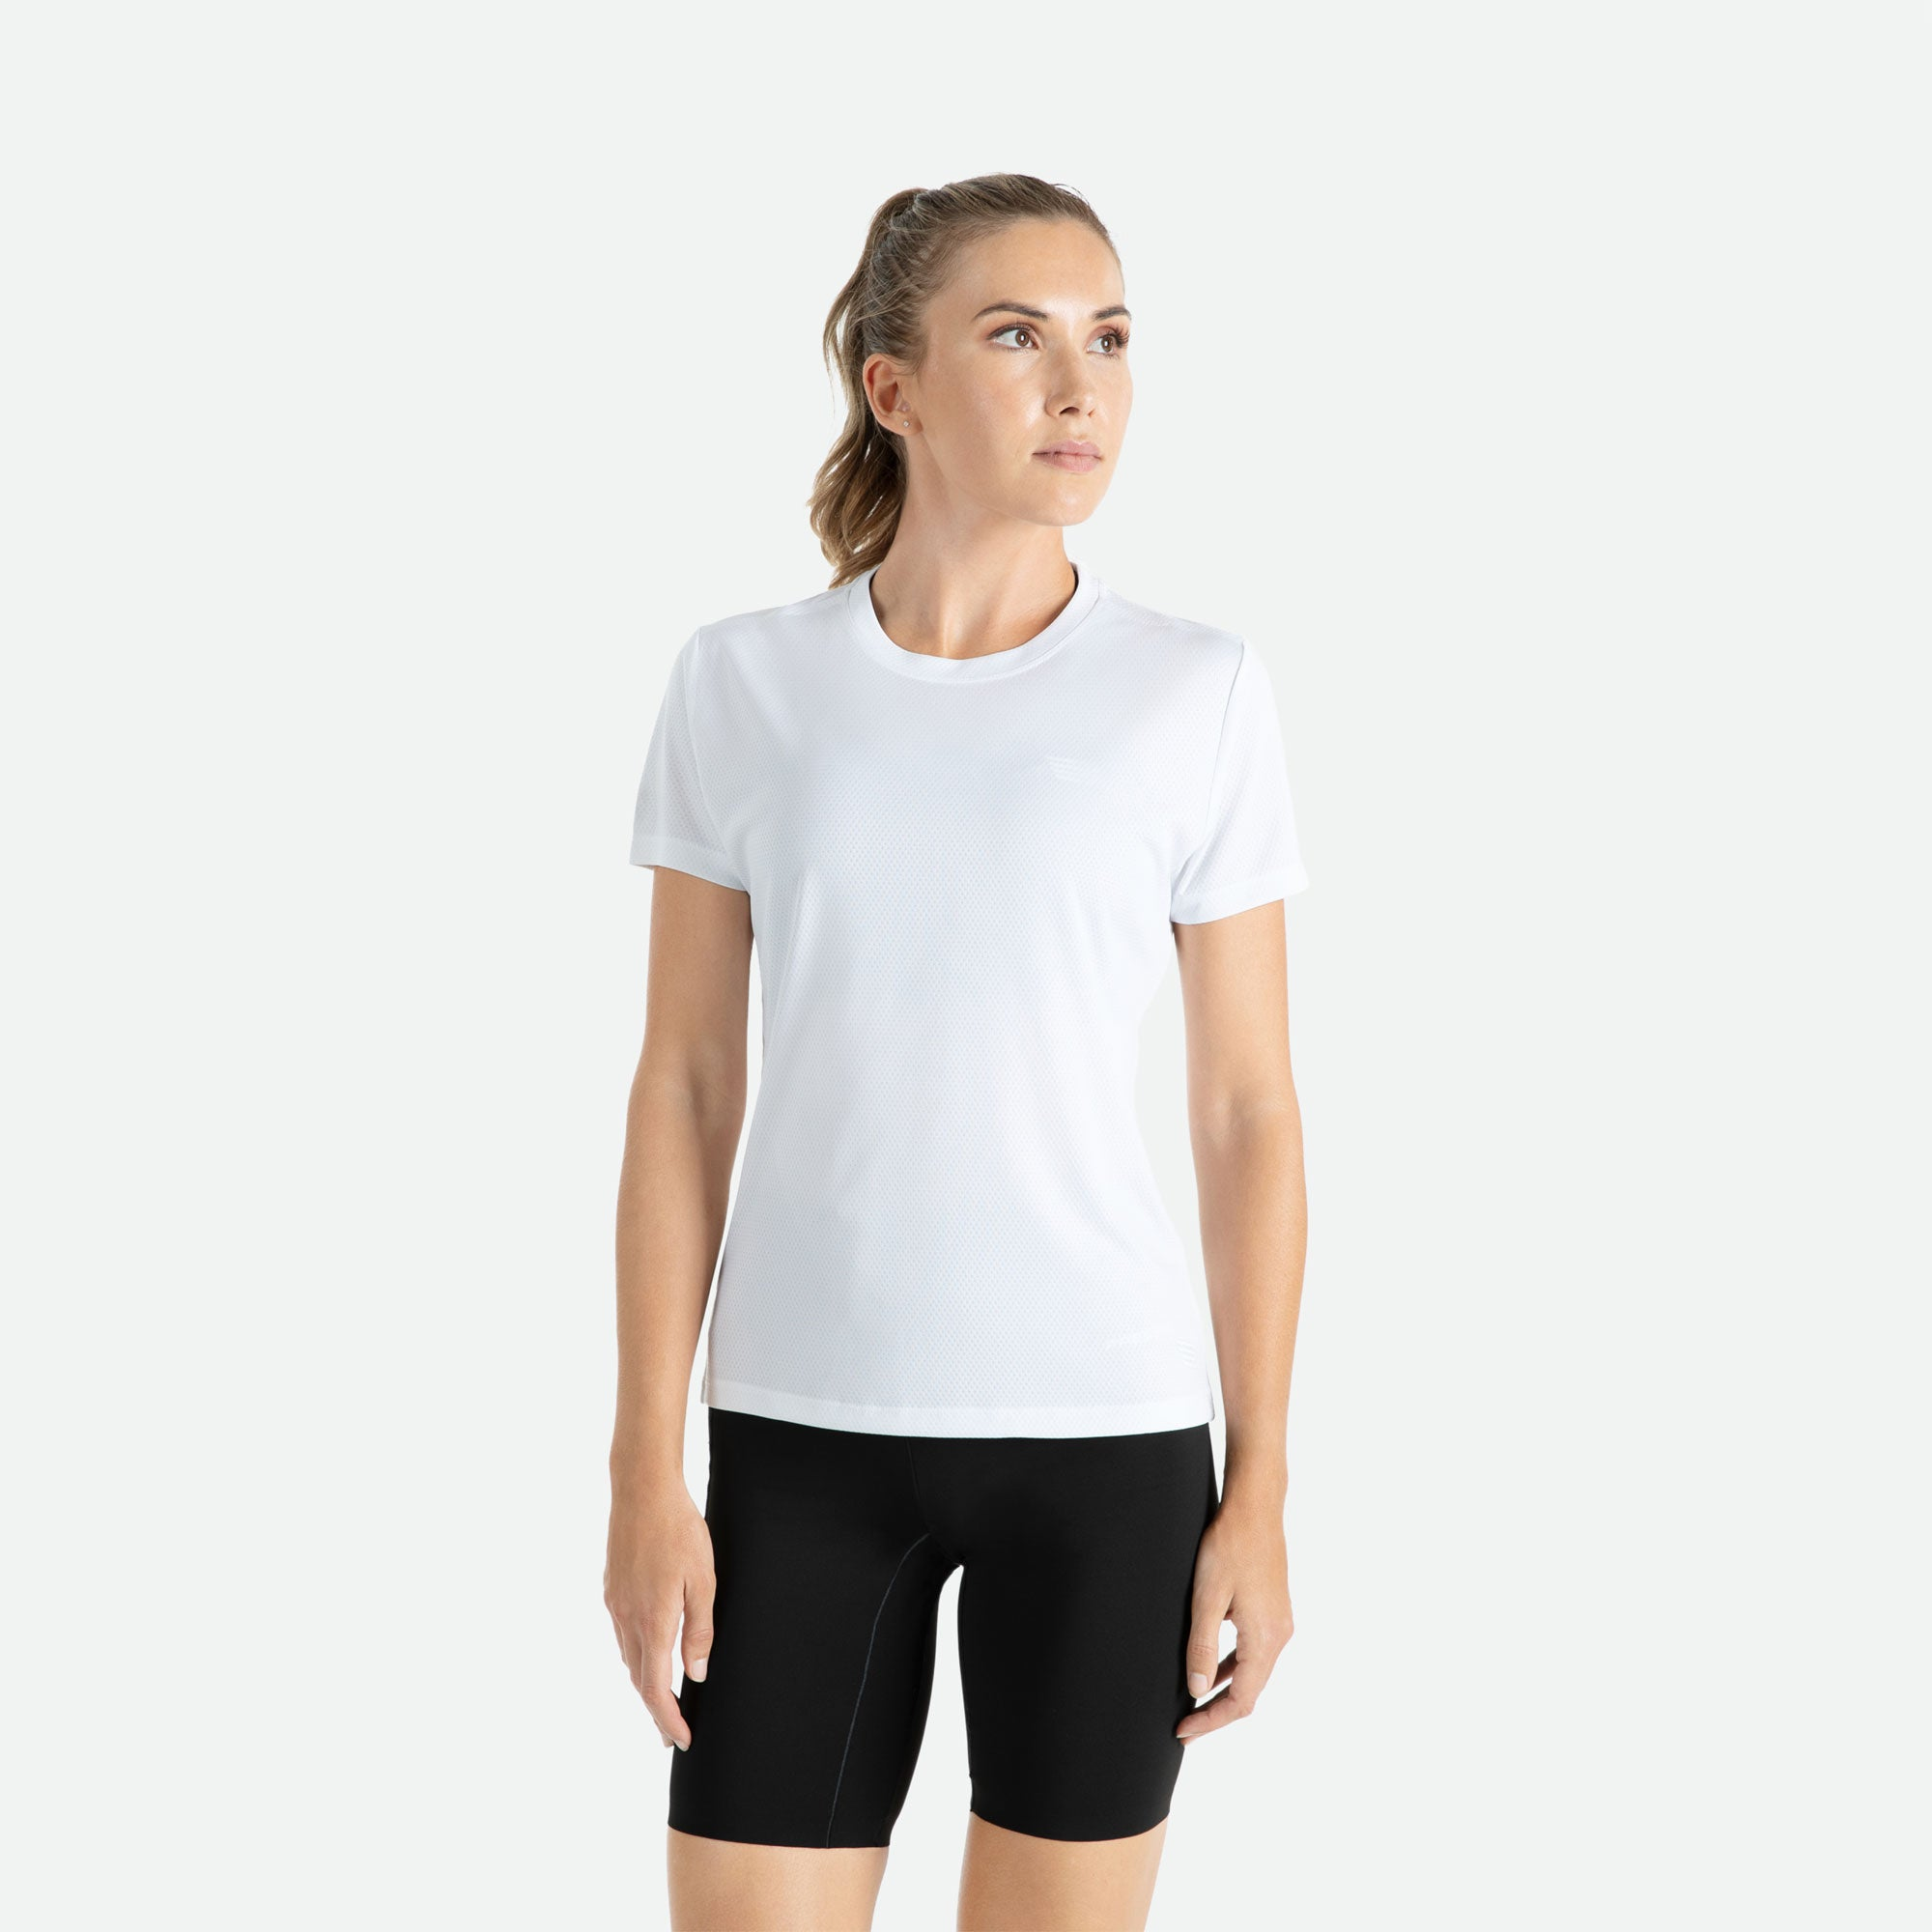 Our Pressio women's white Hāpai short sleeve t-shirt features EcoTECH MF fabric which has dual filament recycled polyester yarns from Unifi for superior moisture control to keep you dry.